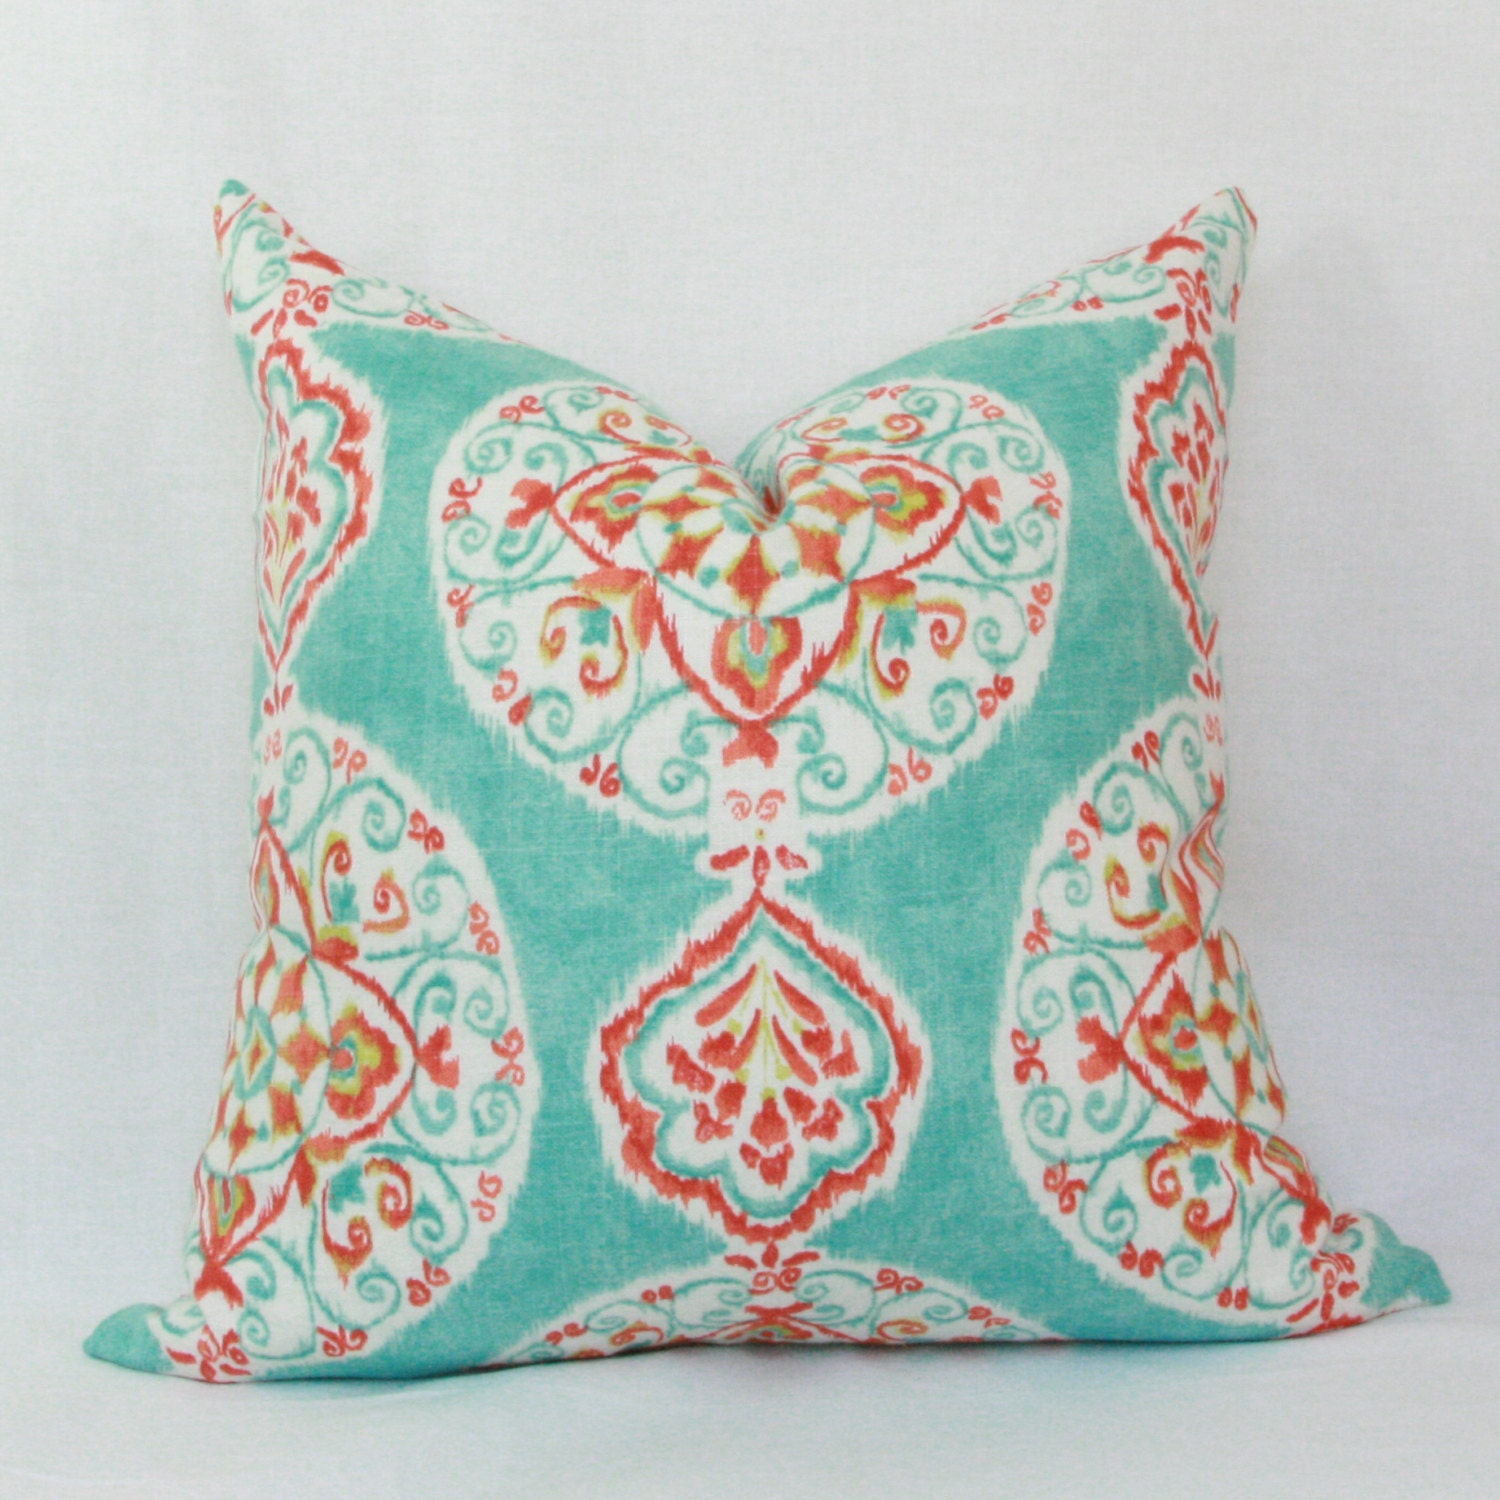 Throw Pillow Red : Aqua red orange decorative throw pillow cover. 18 x